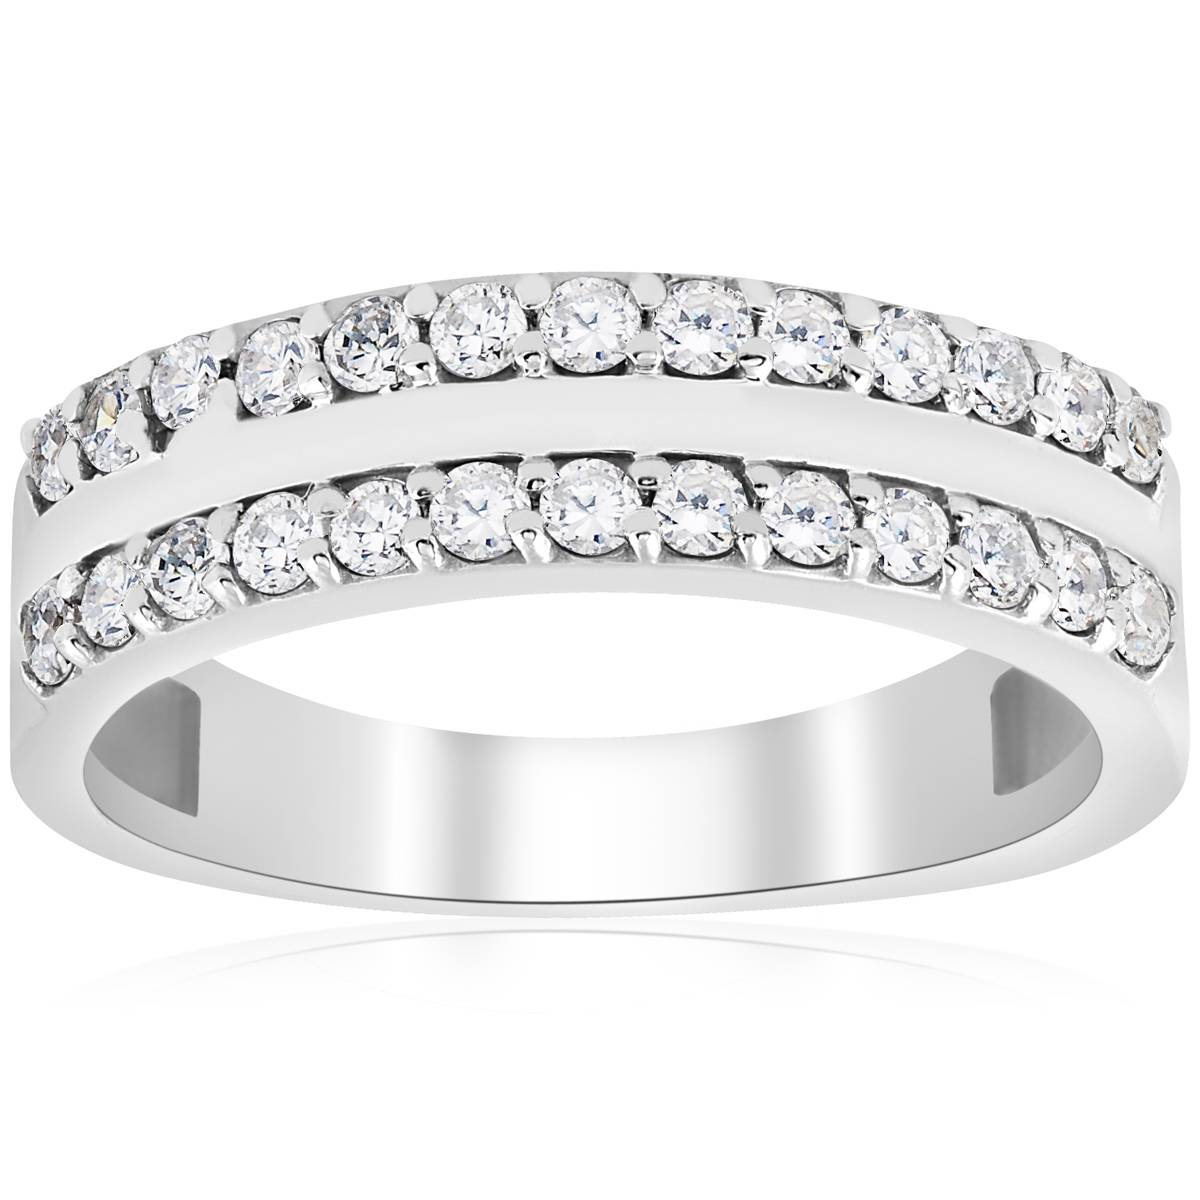 Details About Diamond Wedding Ring 3/4 Ct Double Row Half Eternity Womens  14K White Gold Band Within Recent Diamond Eternity Anniversary Bands In White Gold (Gallery 23 of 25)